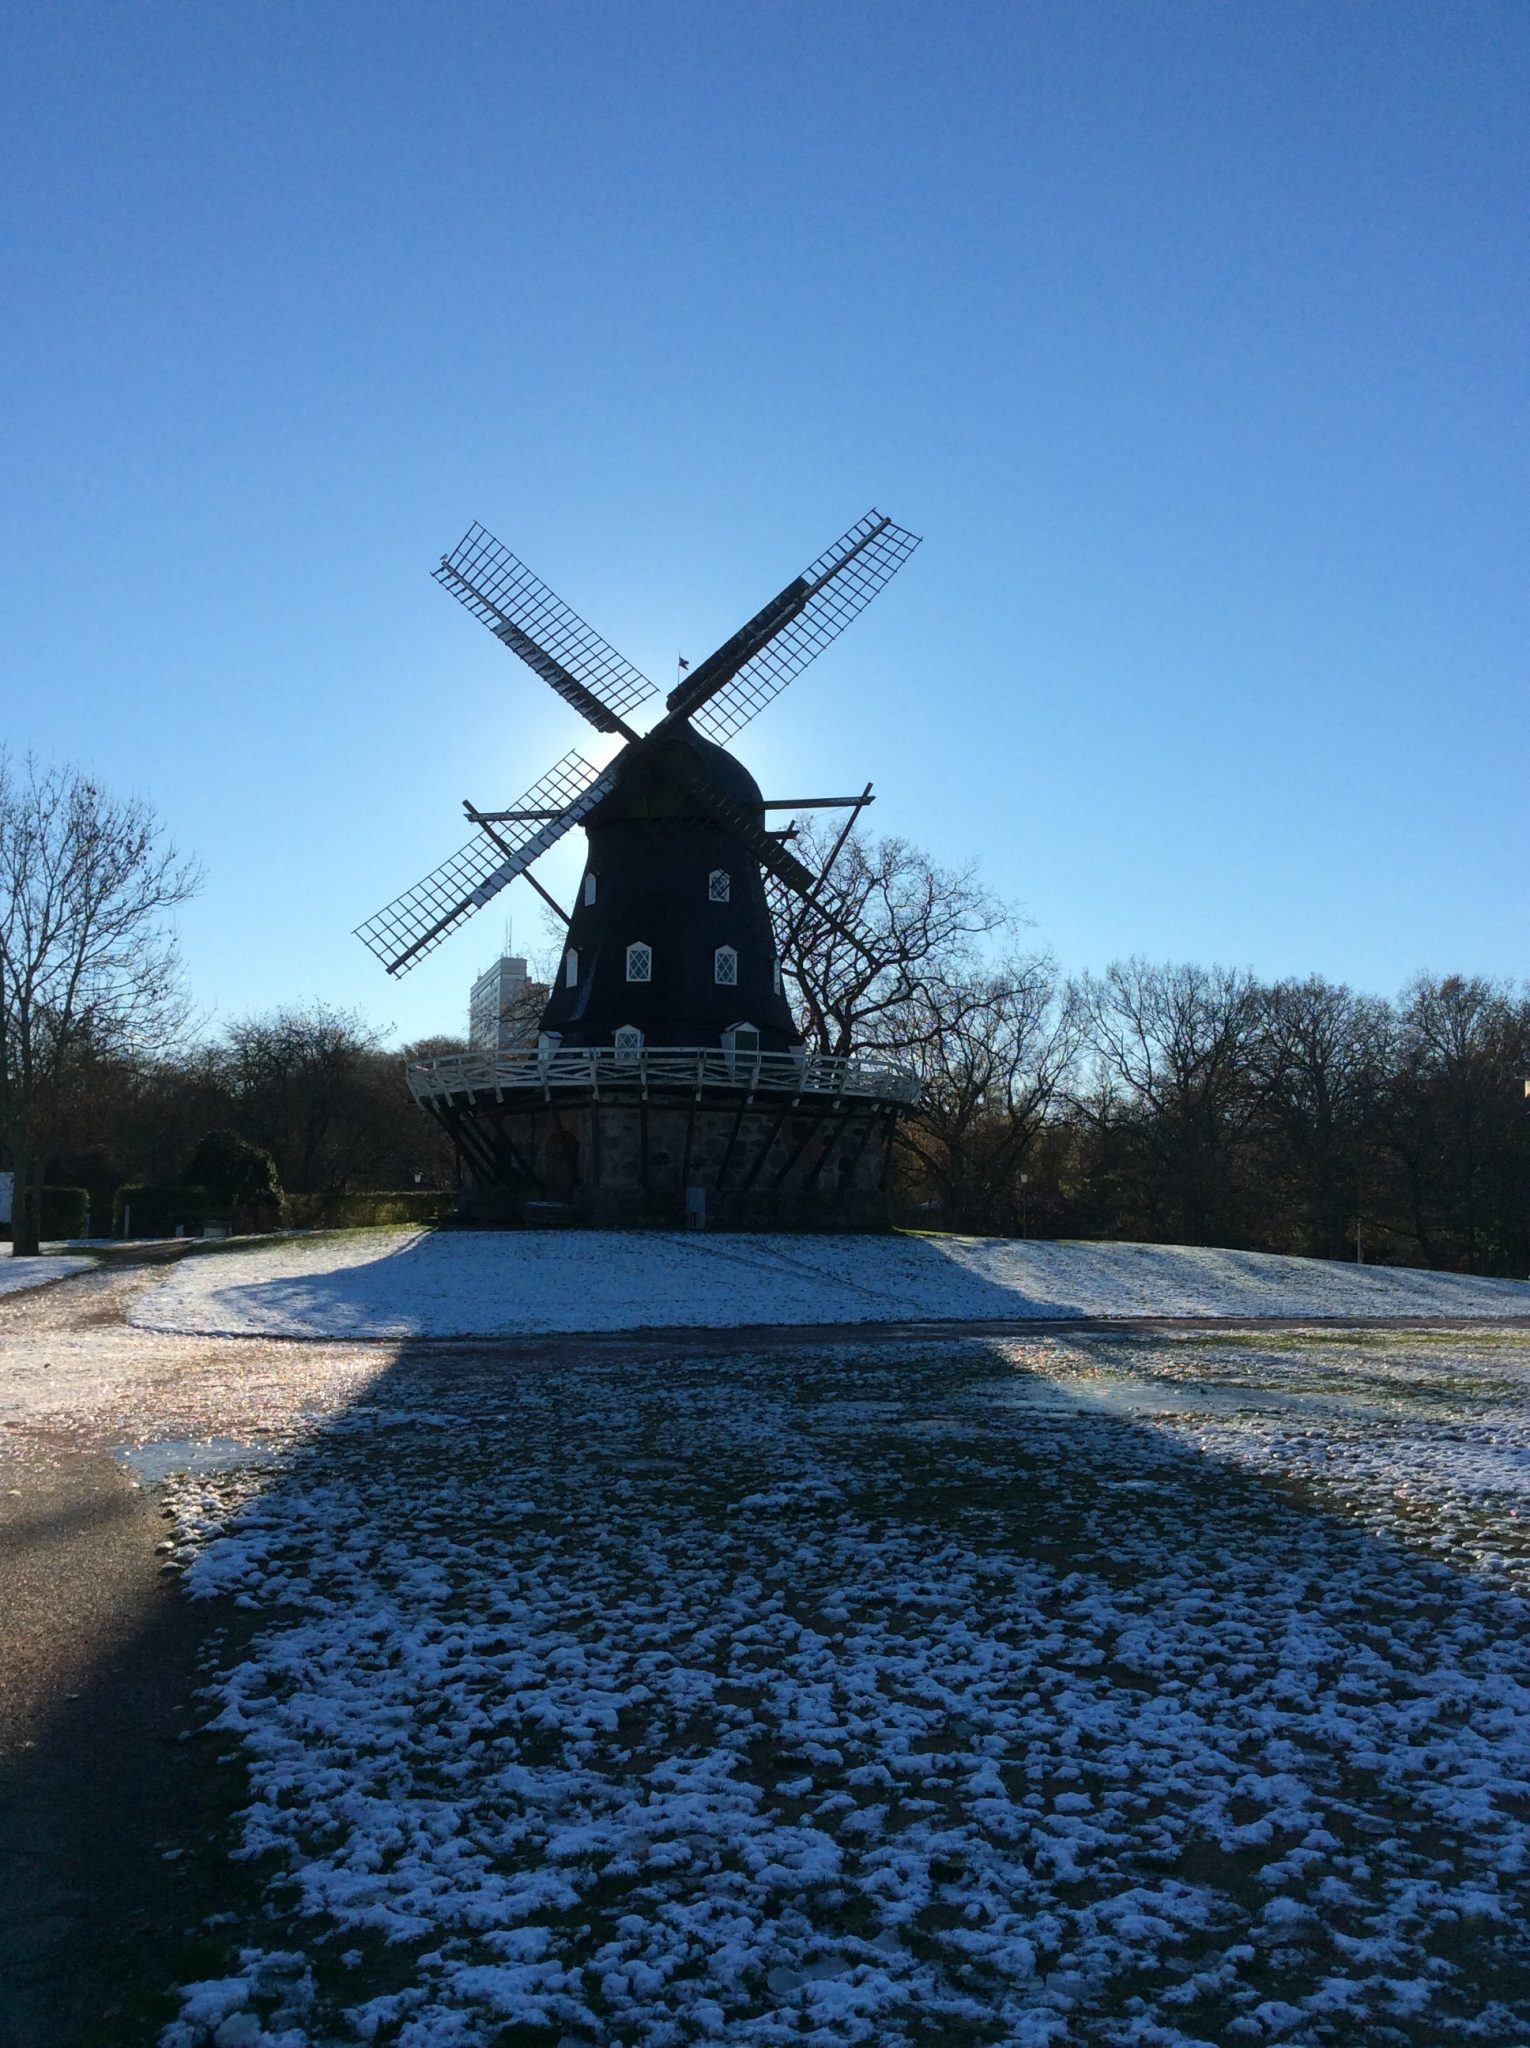 The parks in Malmö: walking in 19th century: